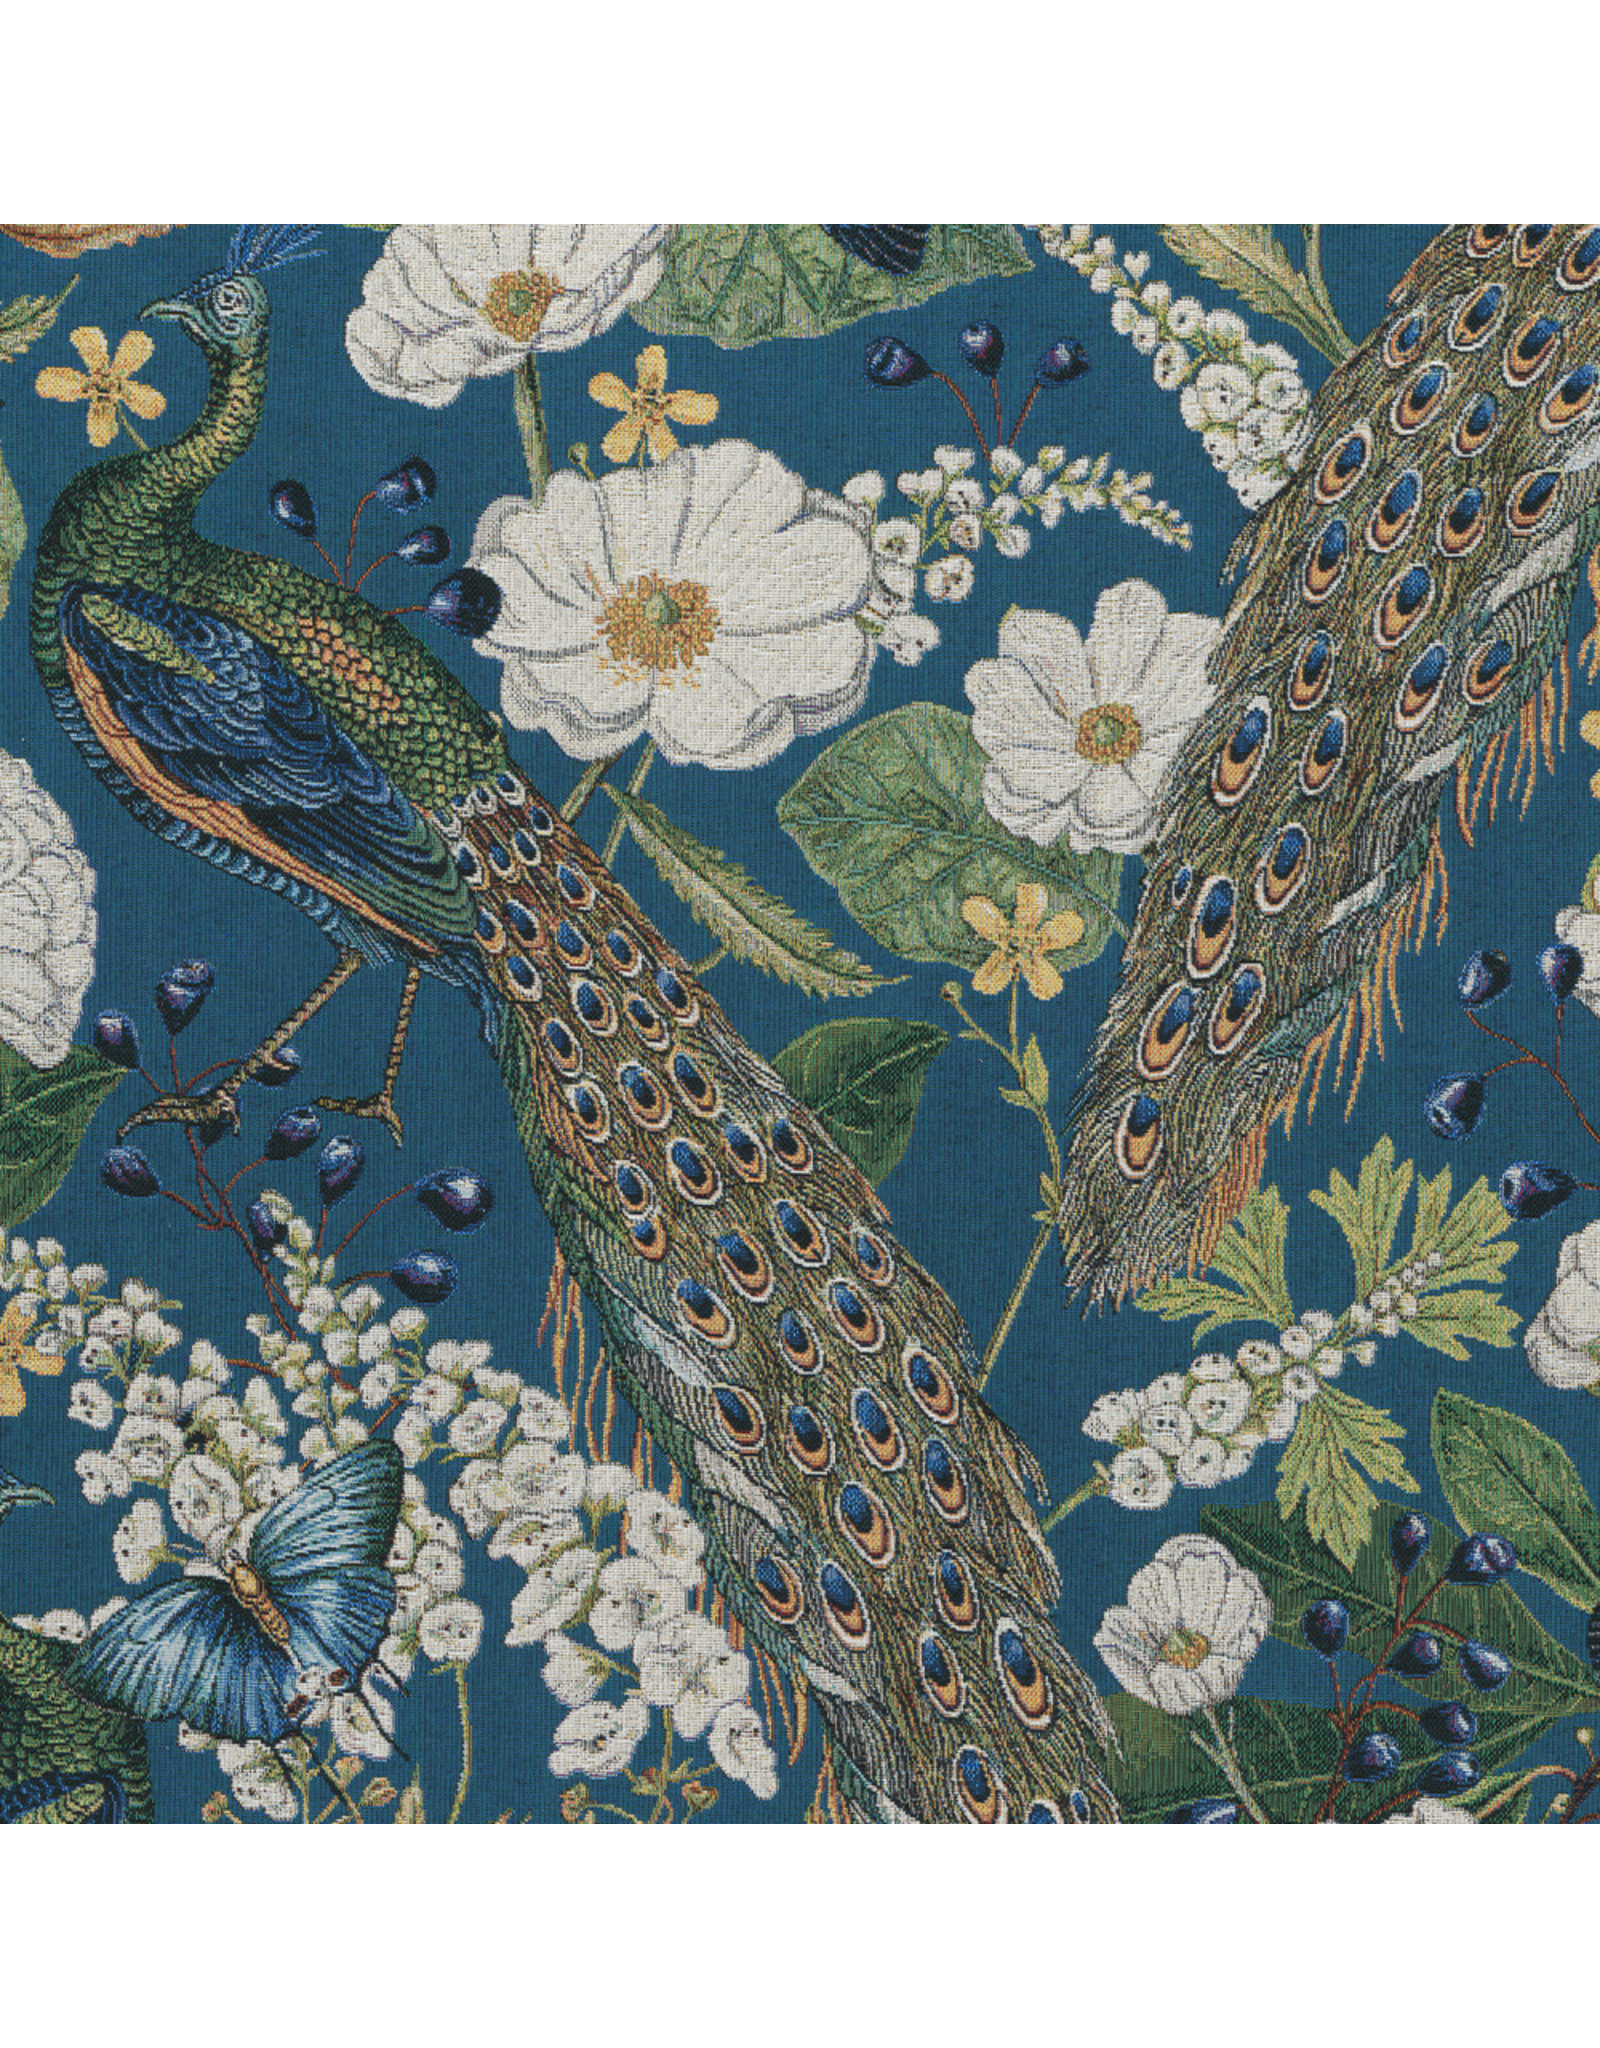 B&B Fabrics Gobelin Premium - Peacocks butterfly petrol